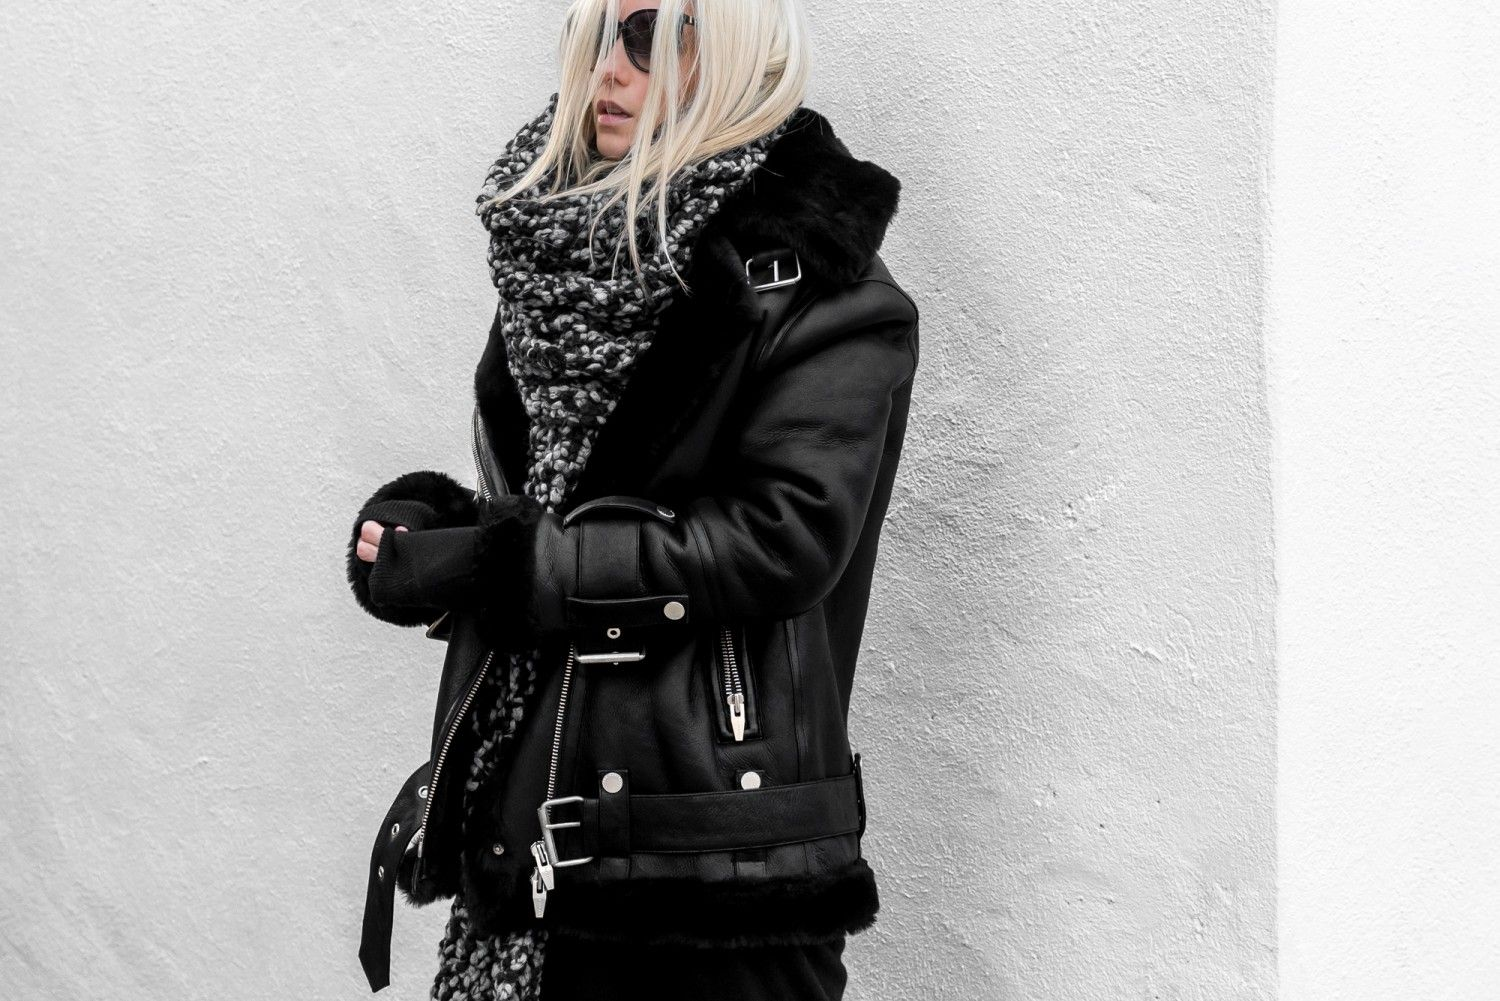 Figtny Com The Arrivals Oversized Shearling Jacket Shearling Jacket Black Shearling Jacket Fashion [ 1001 x 1500 Pixel ]